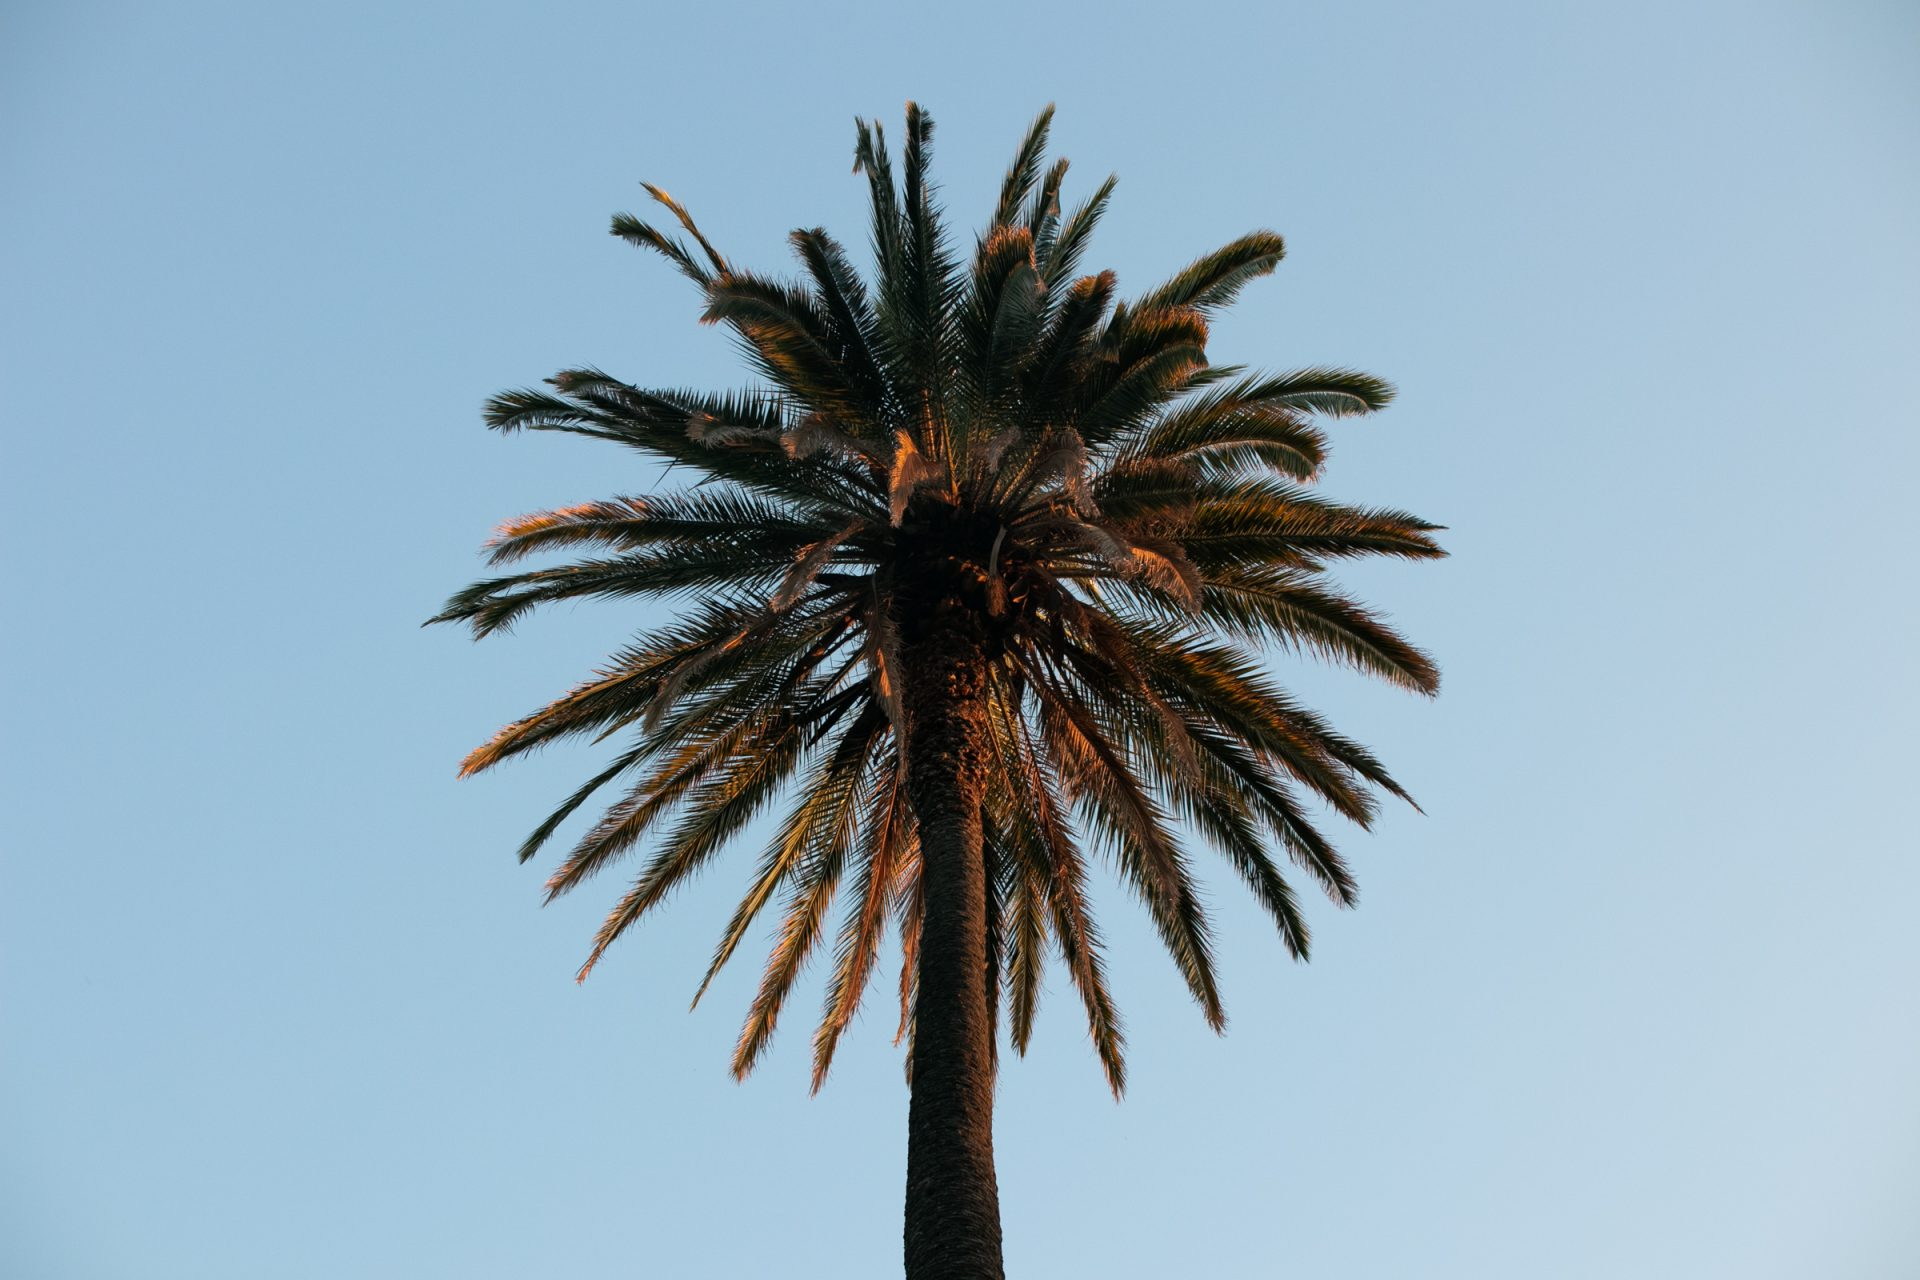 Palm Tree Crown Against Clear Sky